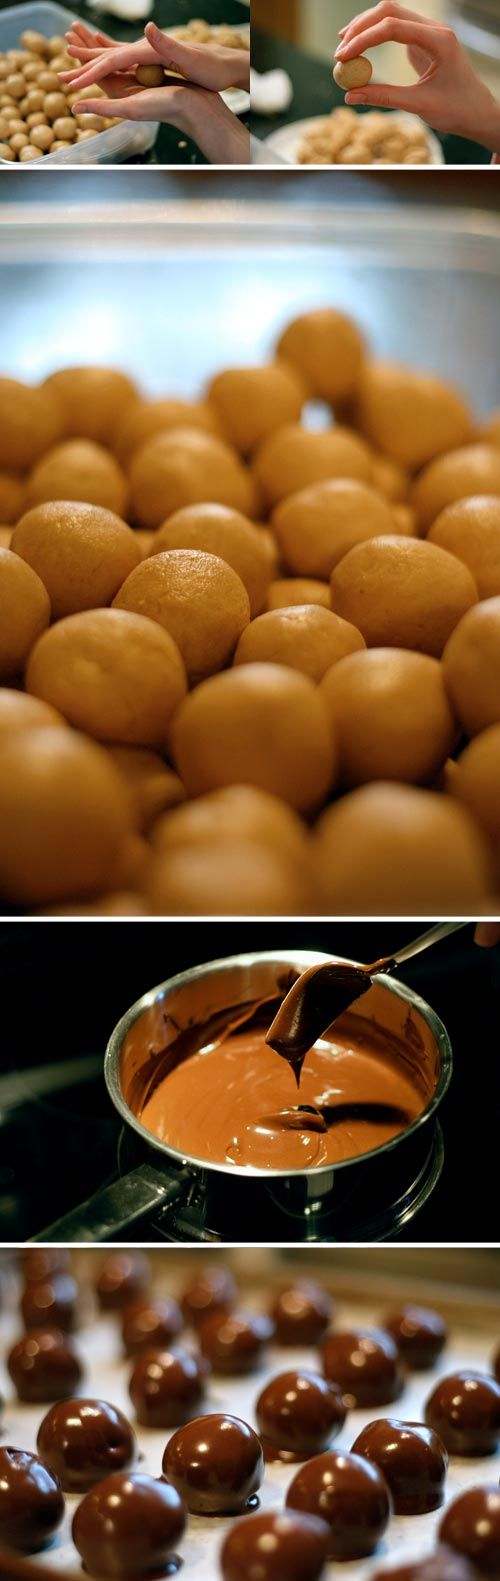 Peanut Butter Balls, it's not Christmas until these are made. The yield